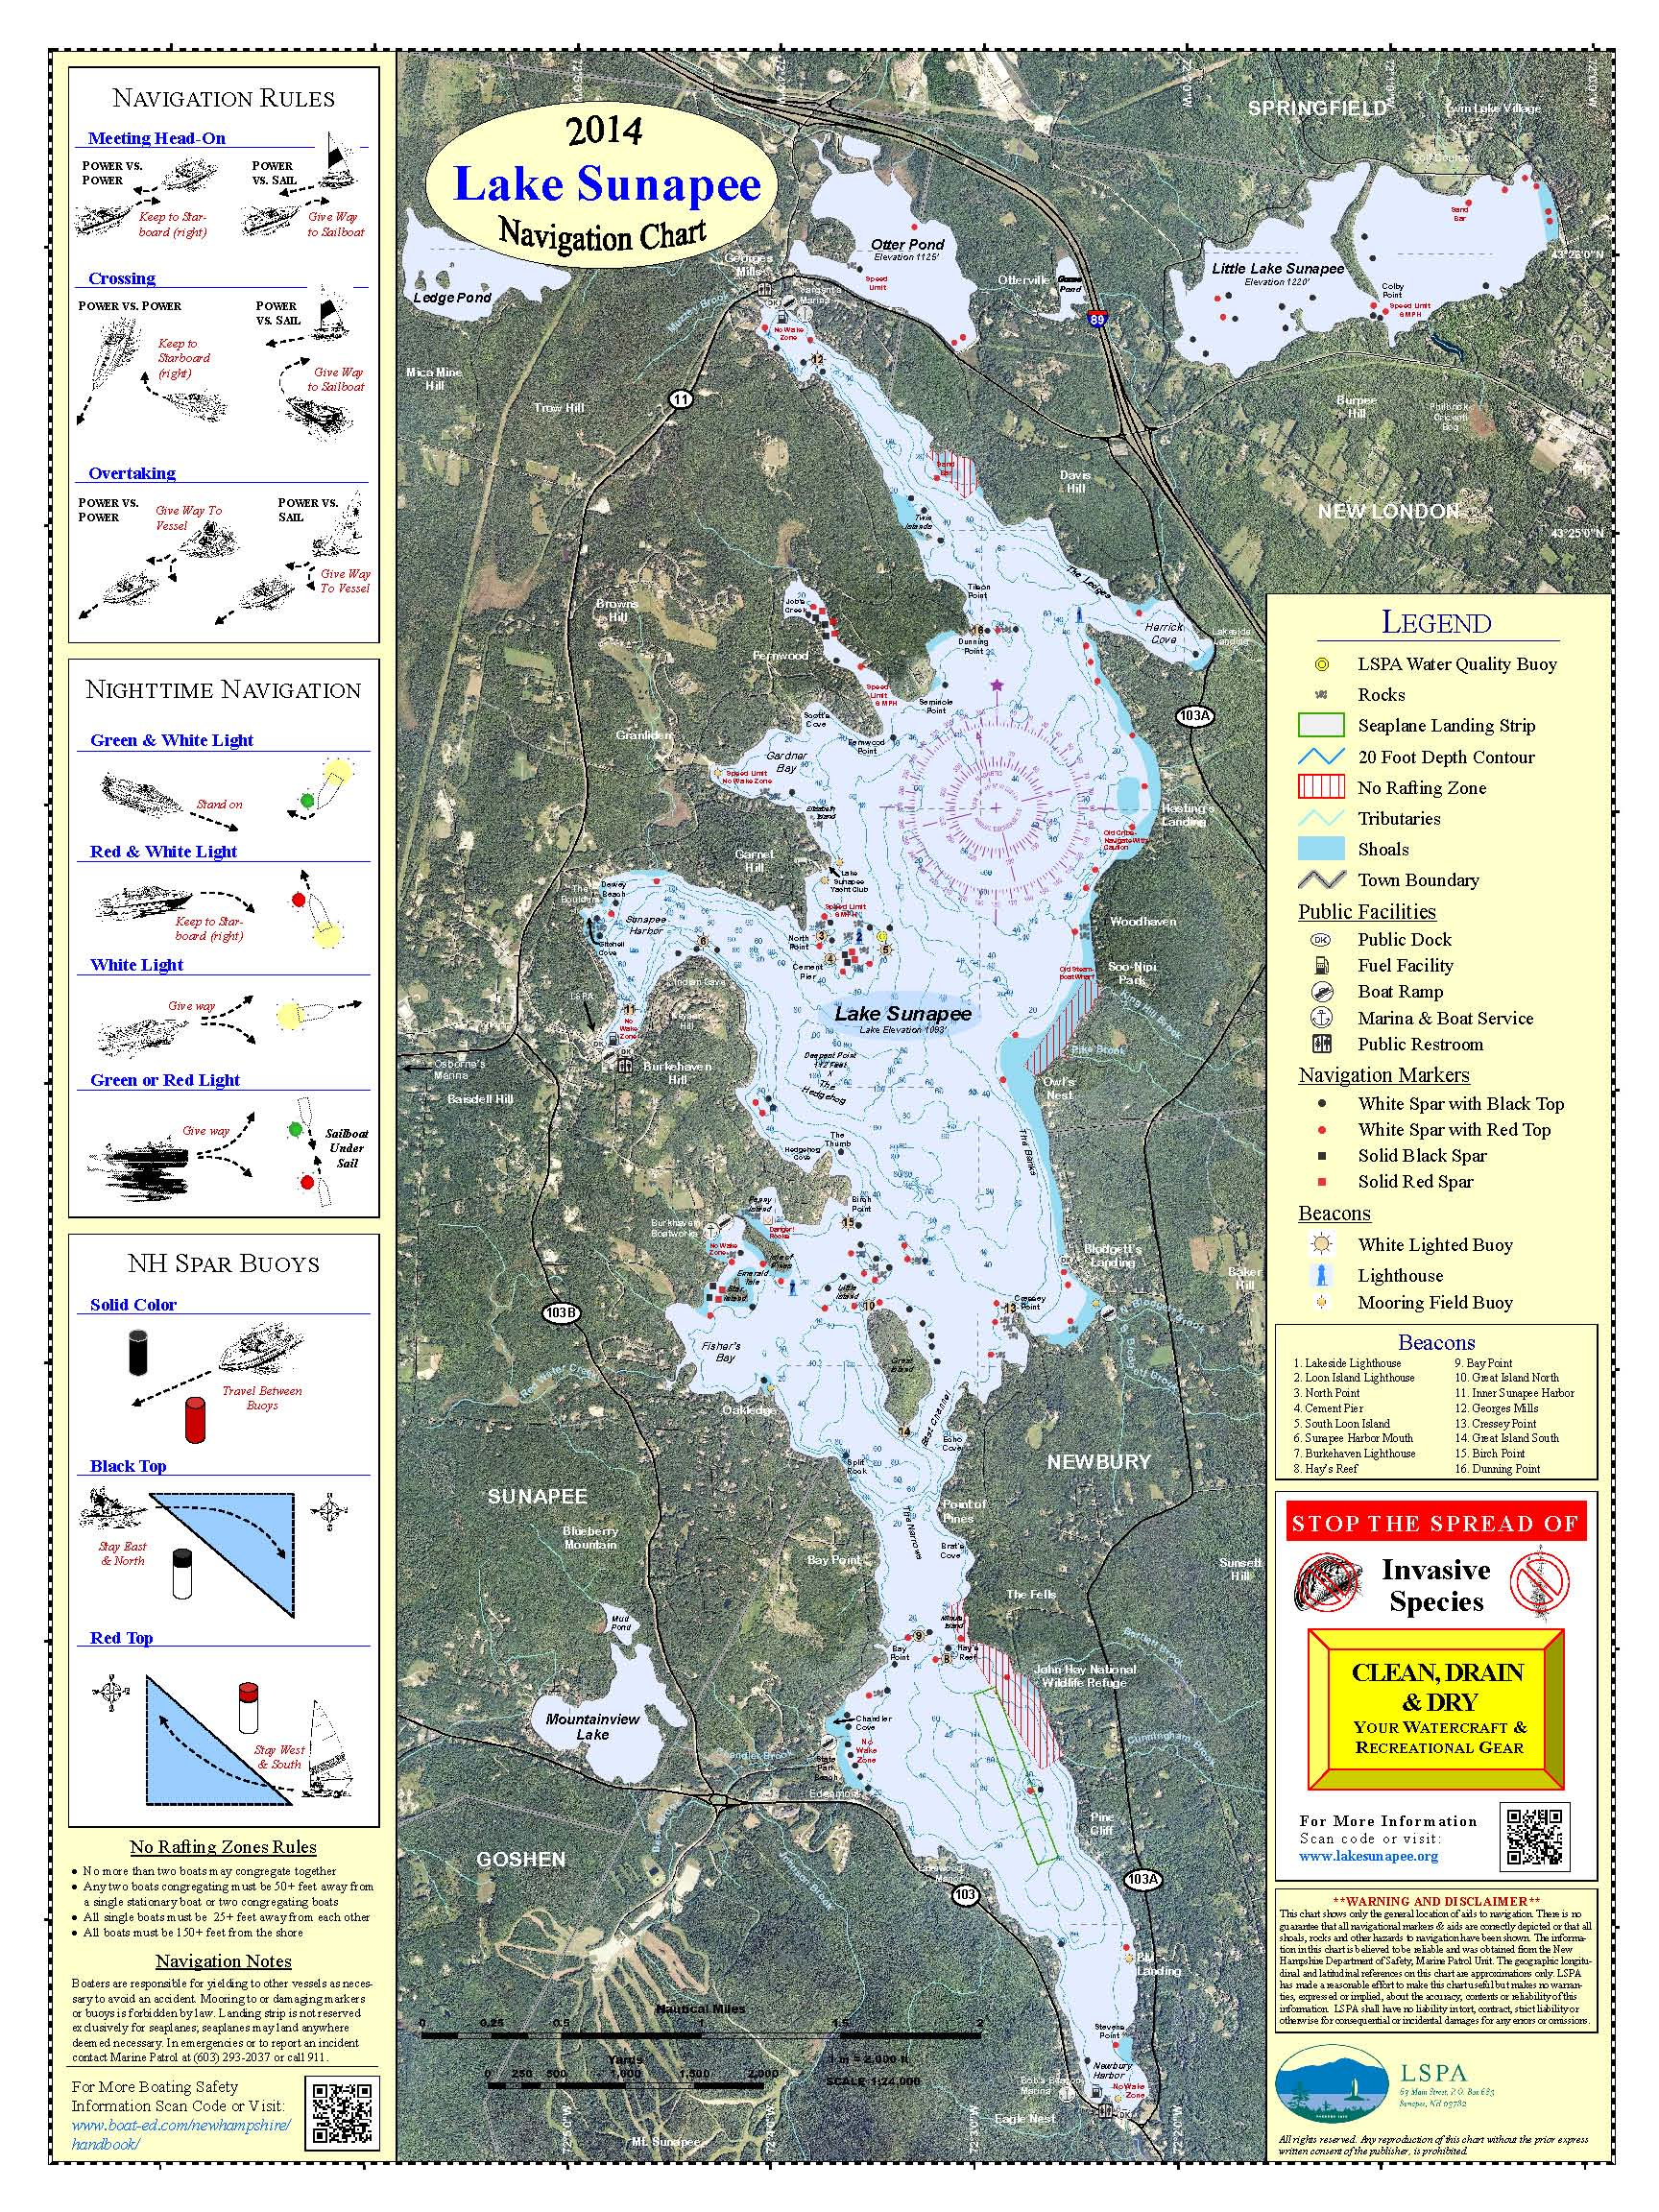 Non-Laminated Navigation Chart  (18 by 24 inches)  $7.00